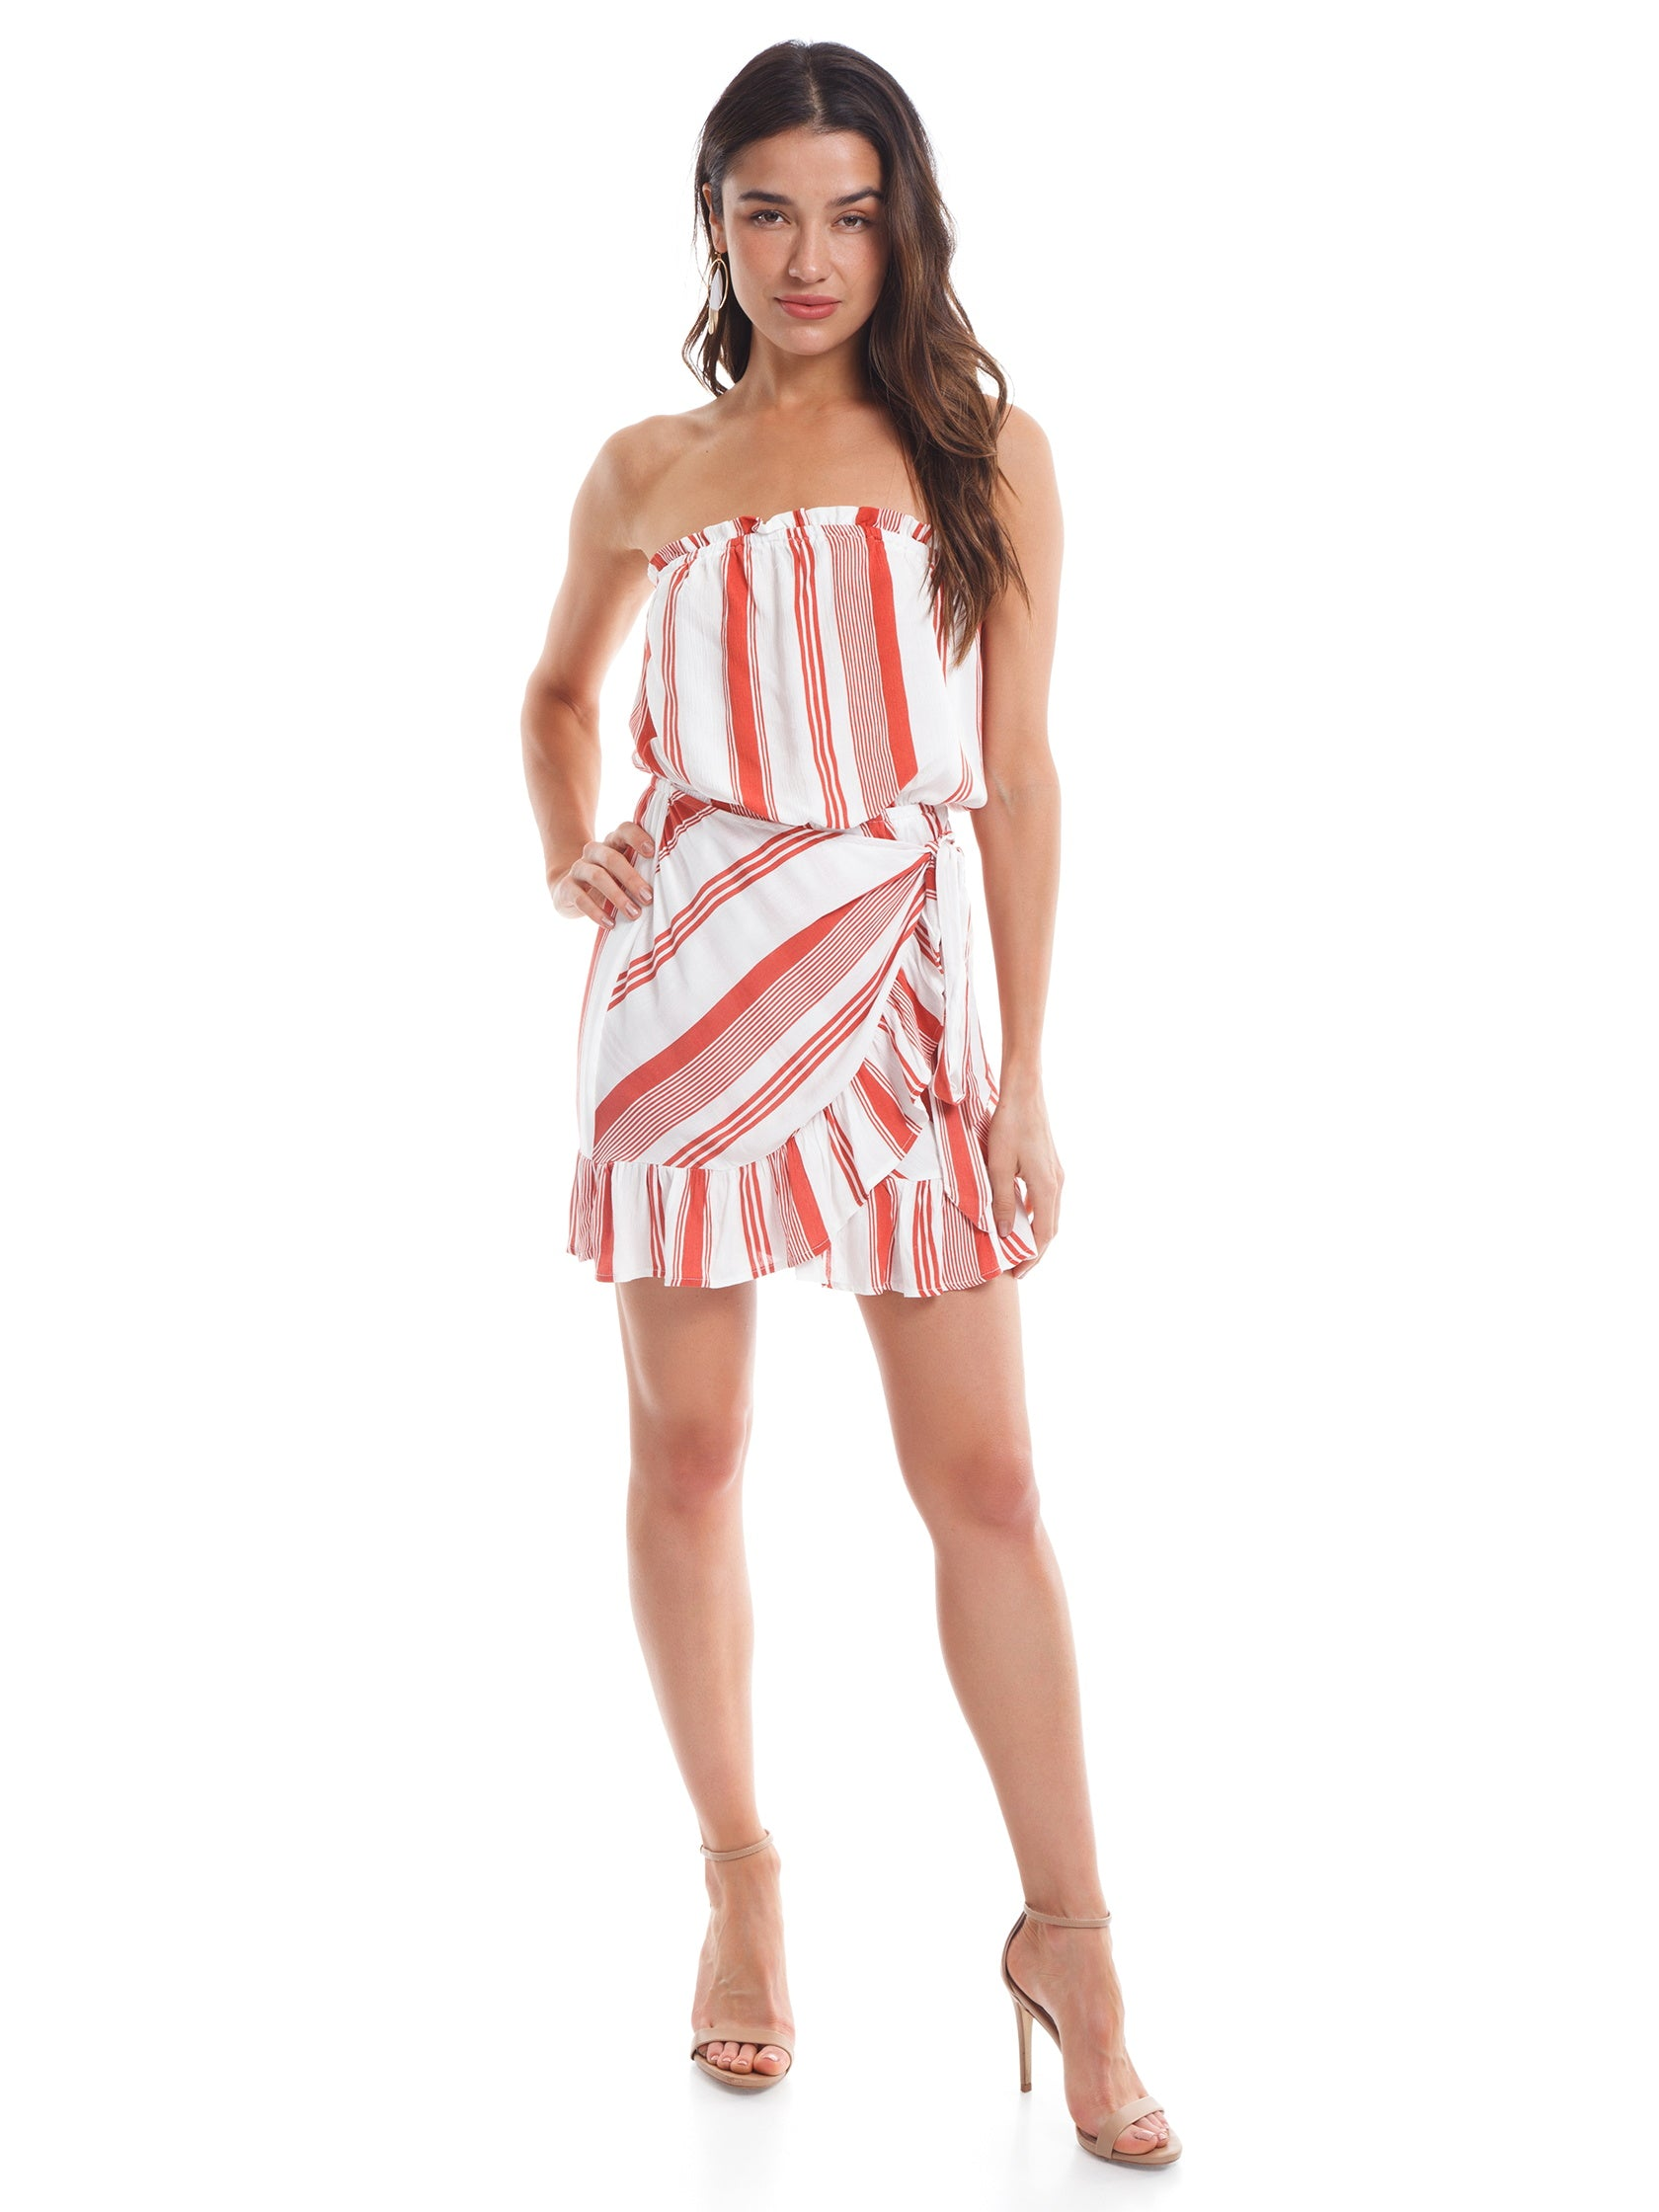 Girl outfit in a dress rental from Cotton Candy called Seeing Stripes Dress